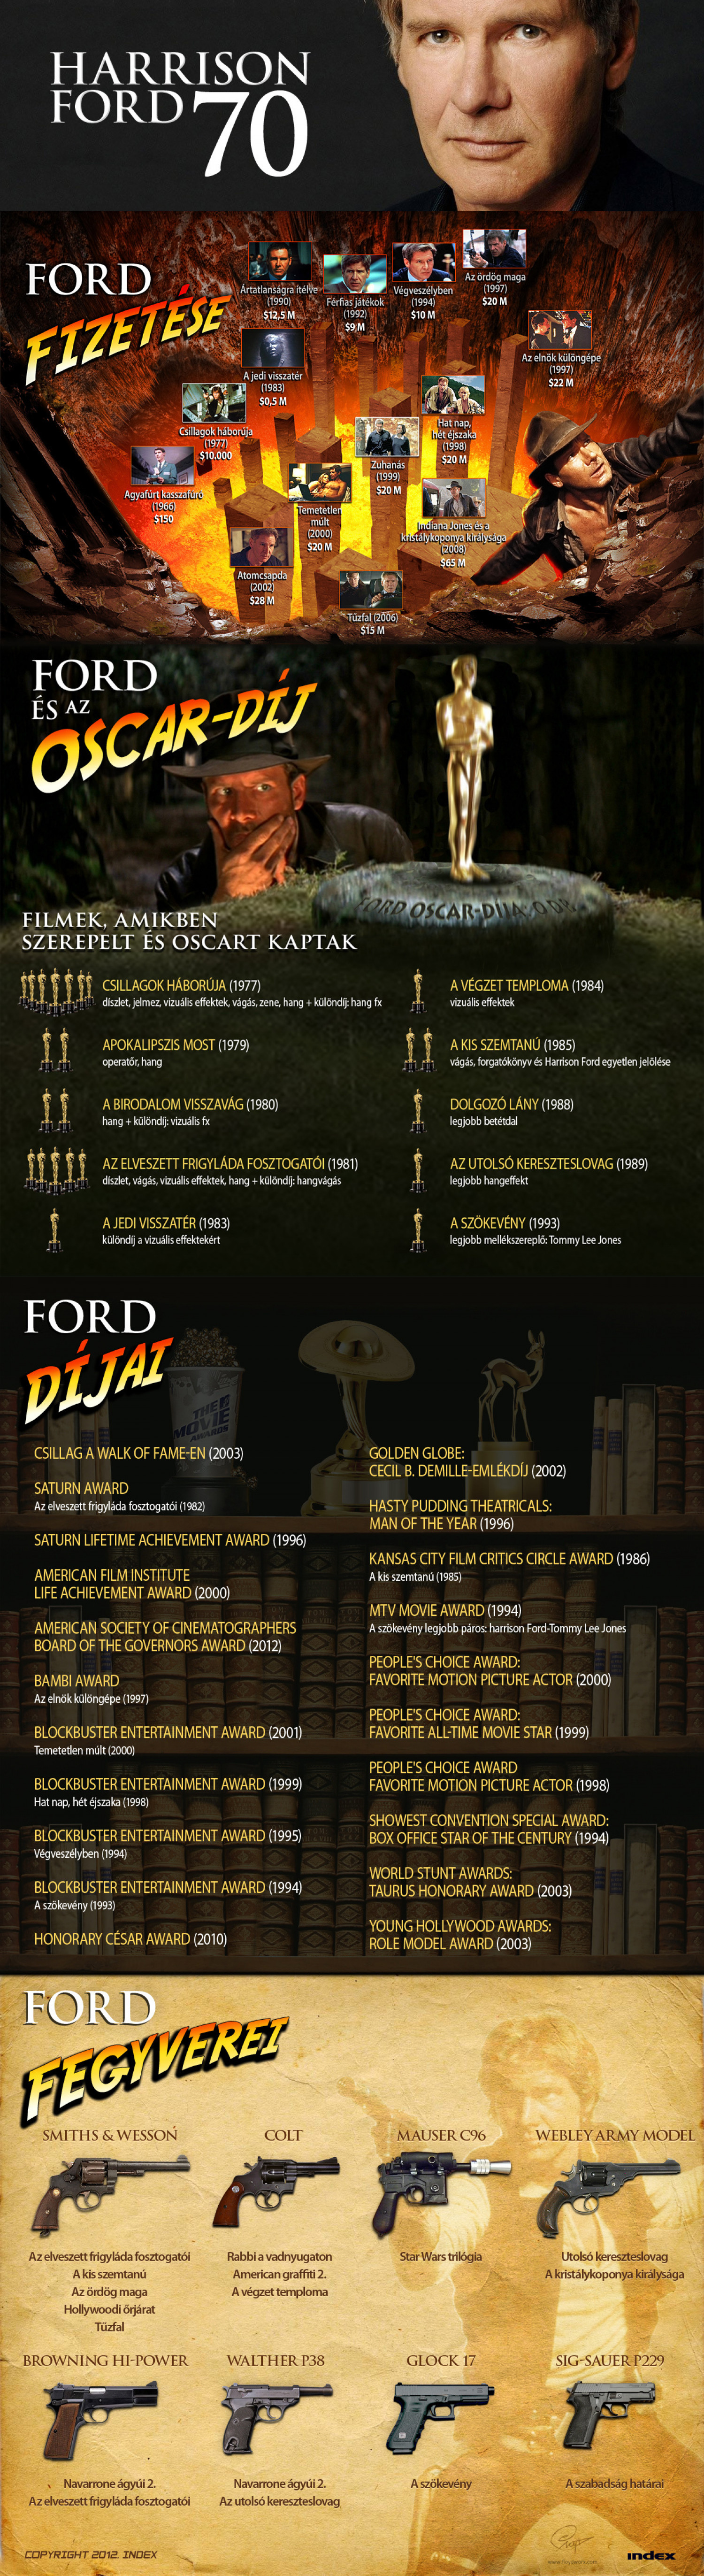 Harrison Ford 70 Infographic